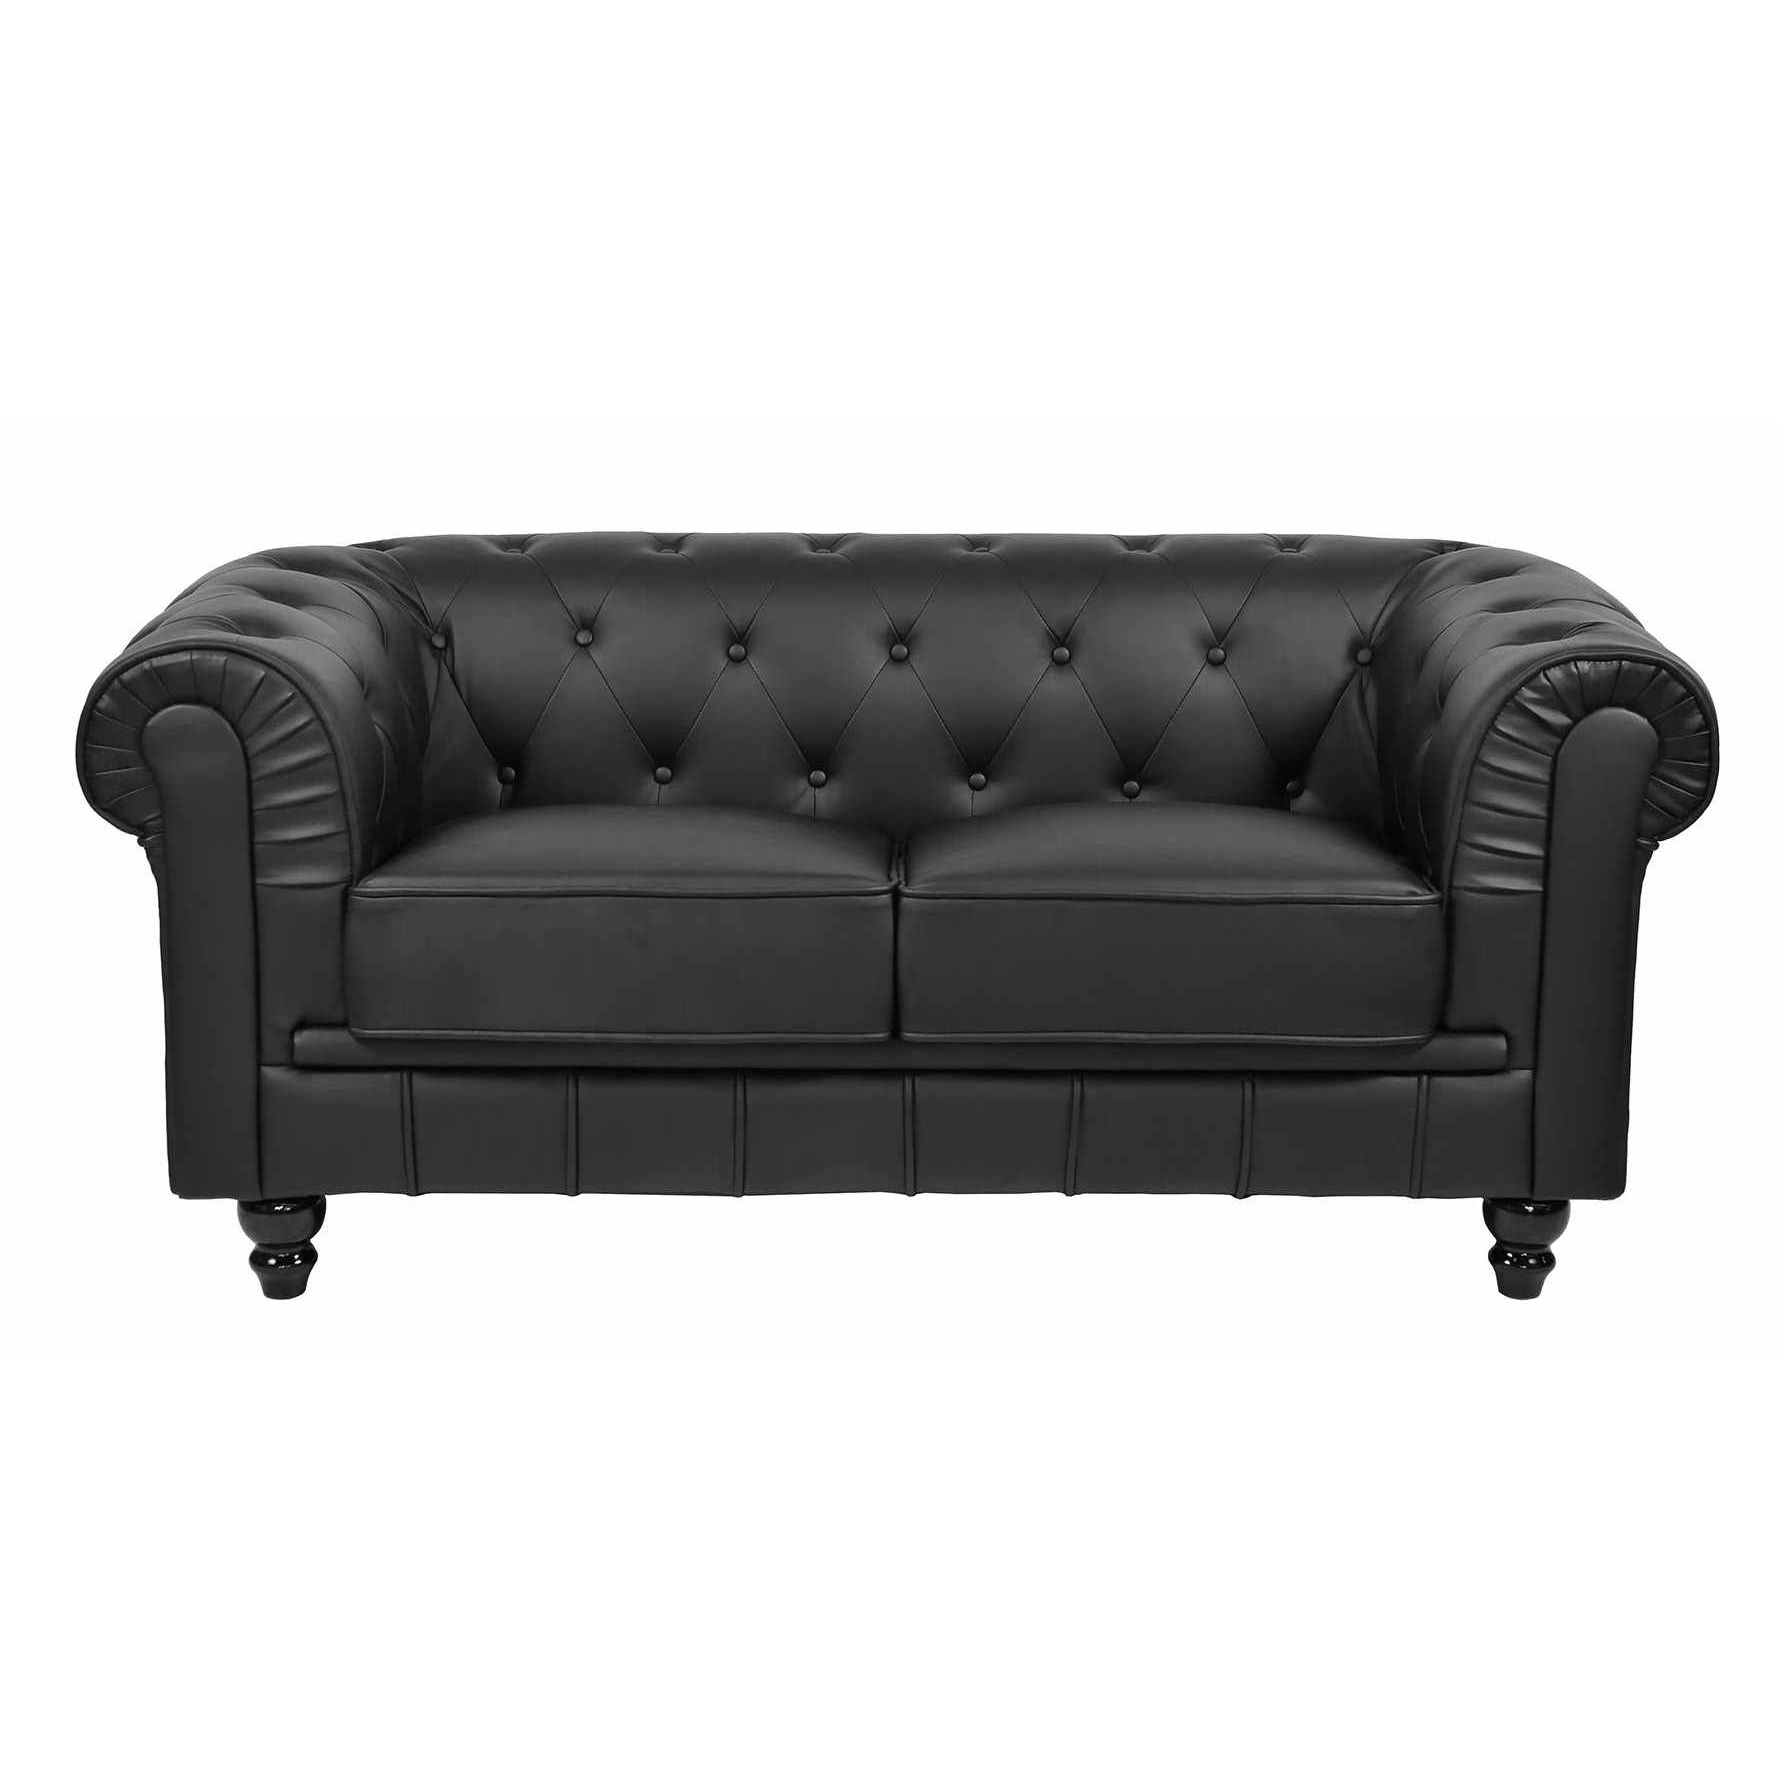 Deco in paris canape 2 places noir chesterfield can chester 2p pu noir - Canape chesterfield noir ...